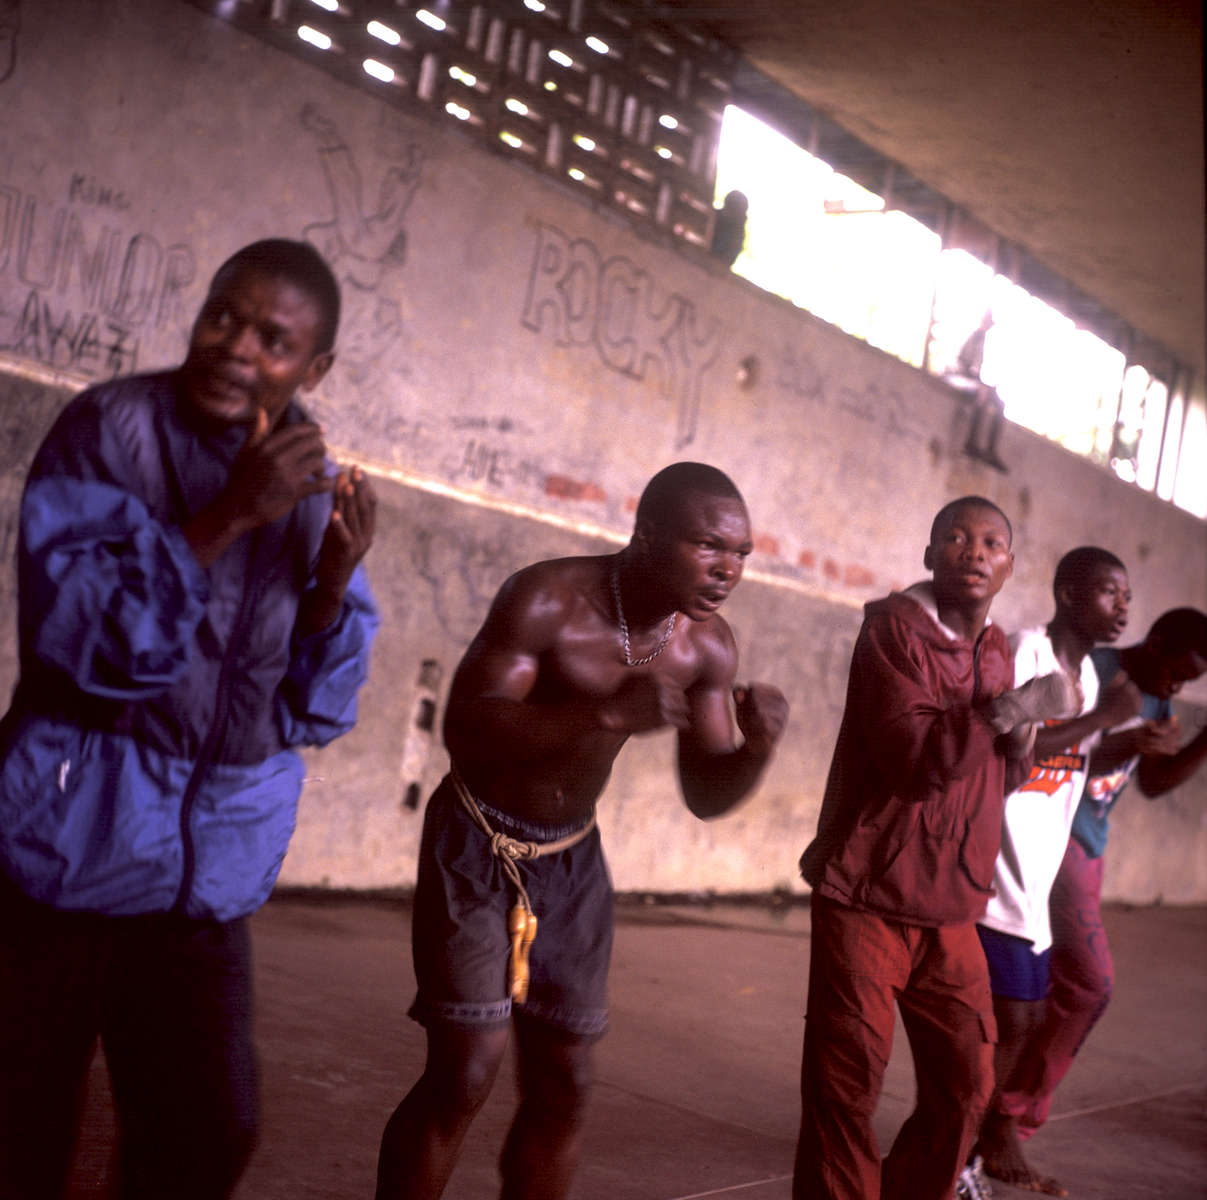 Congolese youth learning how to box in Kisangani, DRCongo